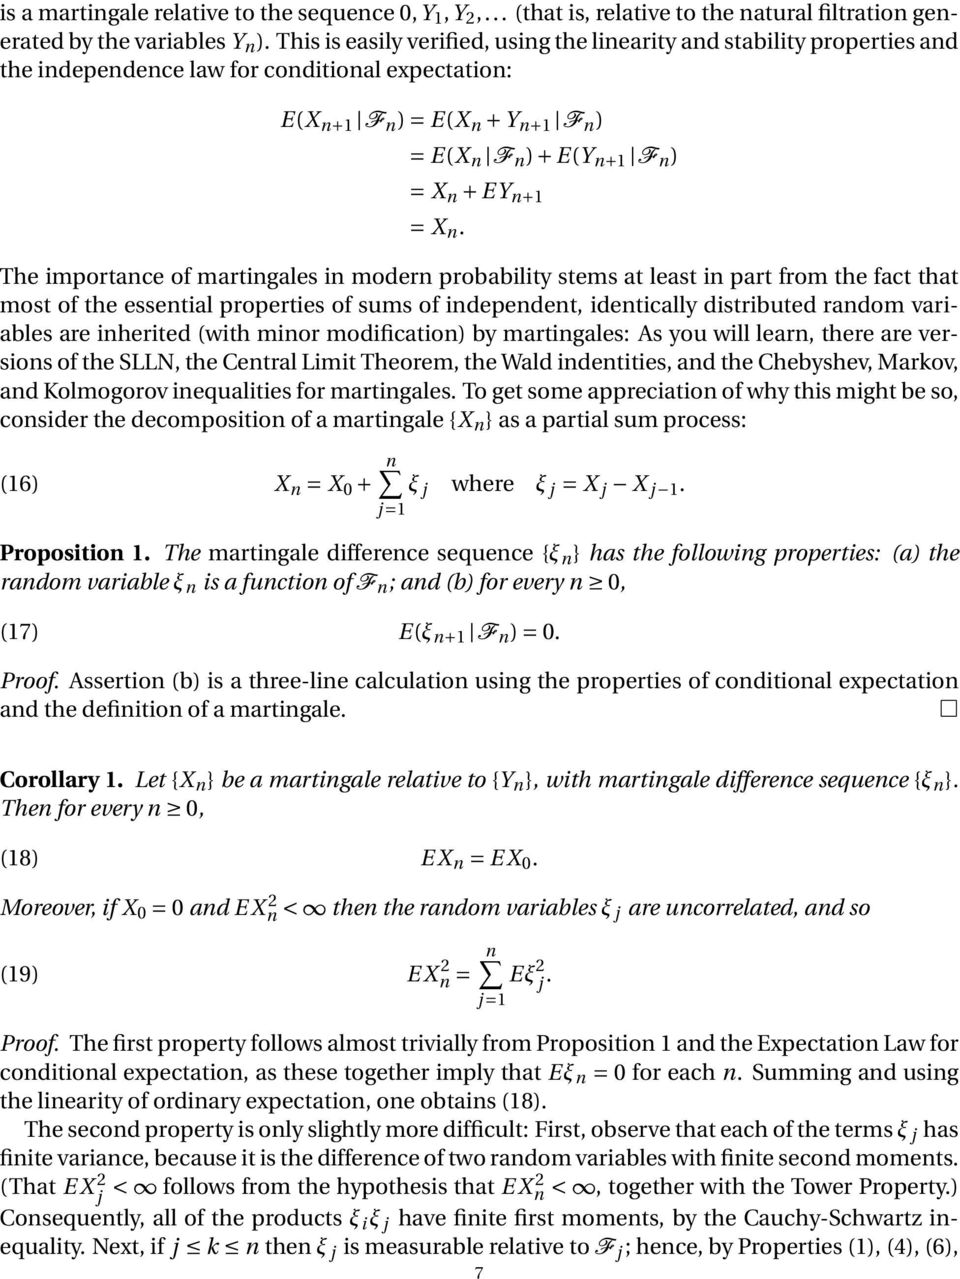 CONDITIONAL EXPECTATION AND MARTINGALES - PDF